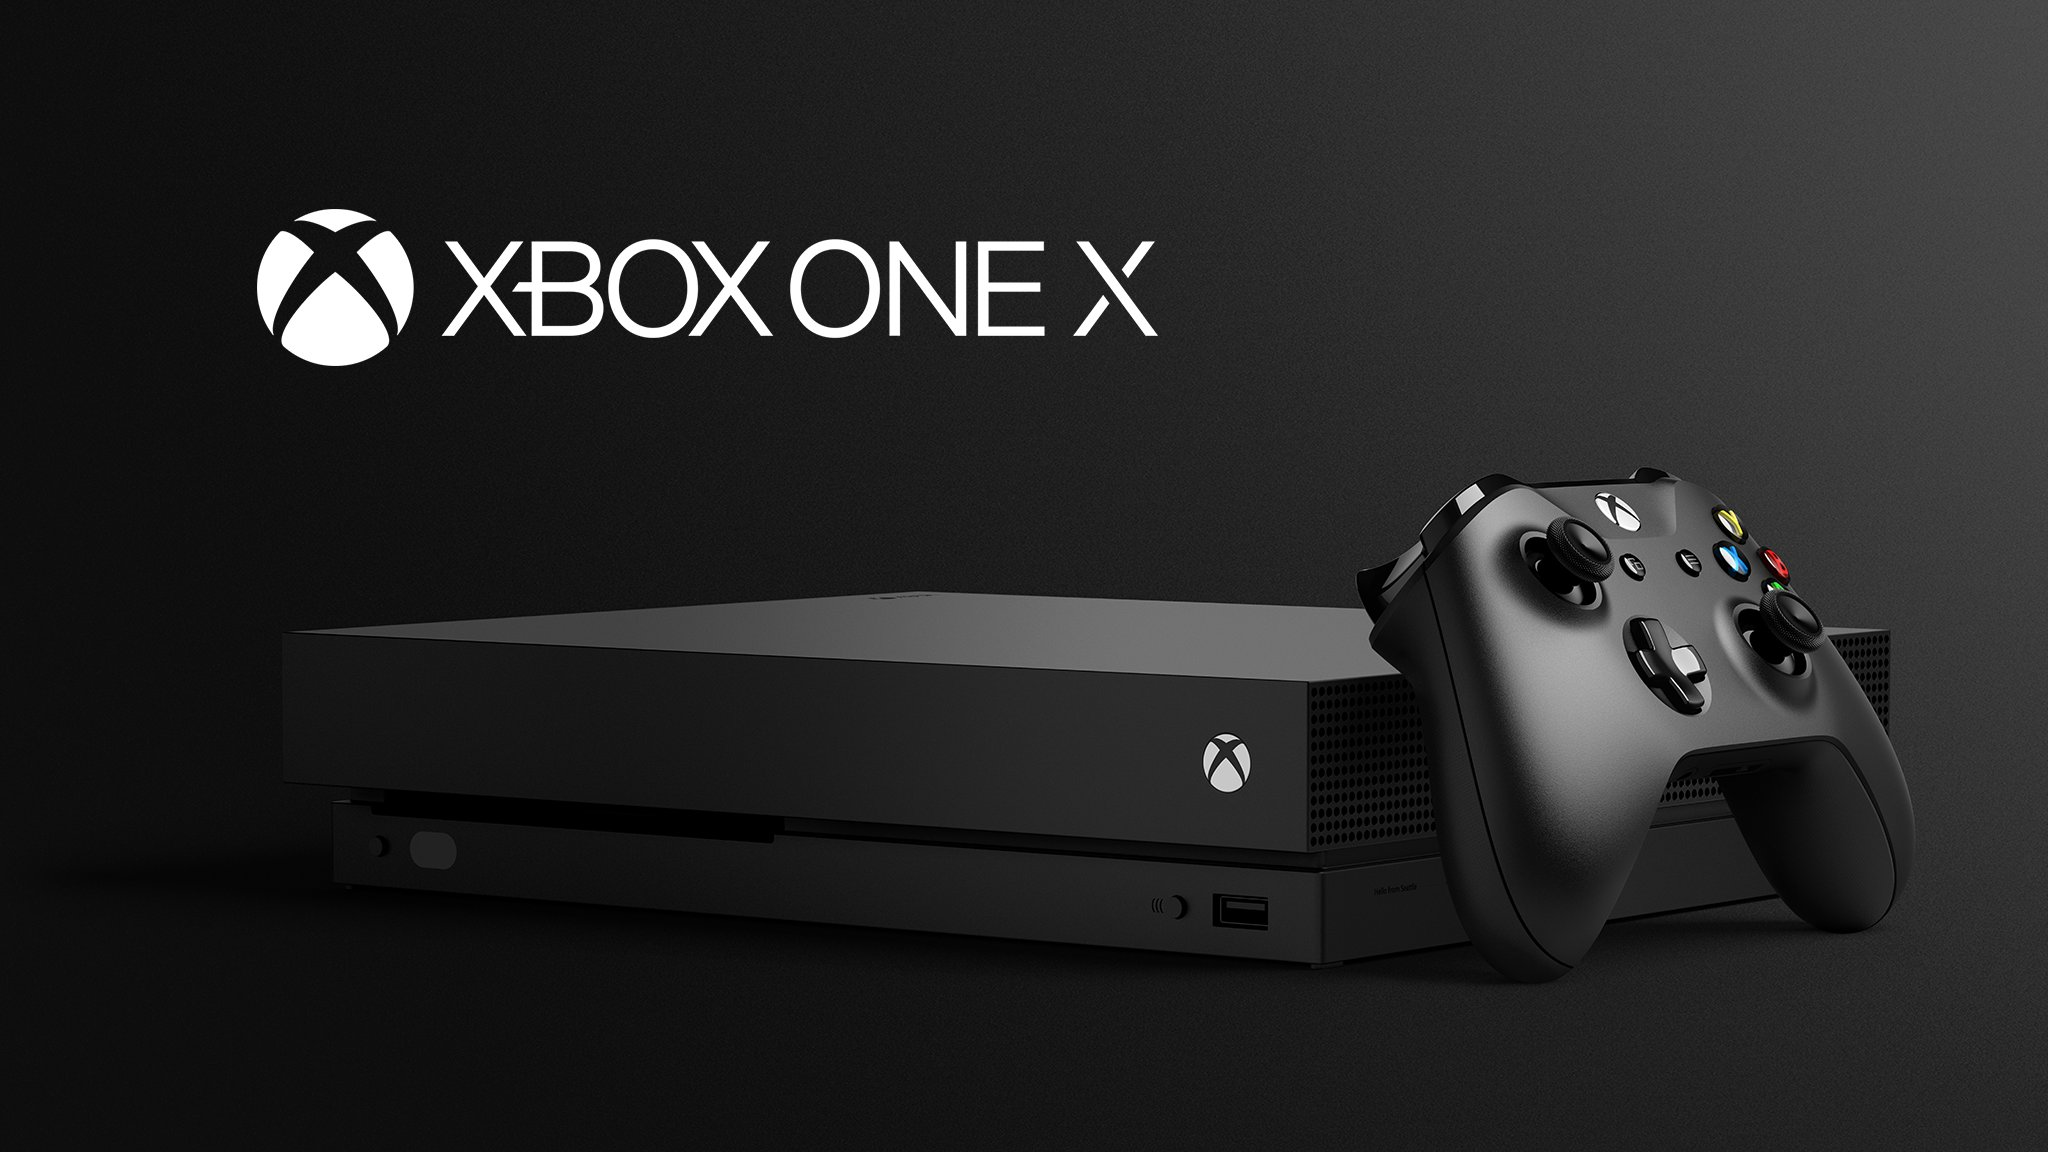 Microsoft has unveiled its new console, the Xbox One X